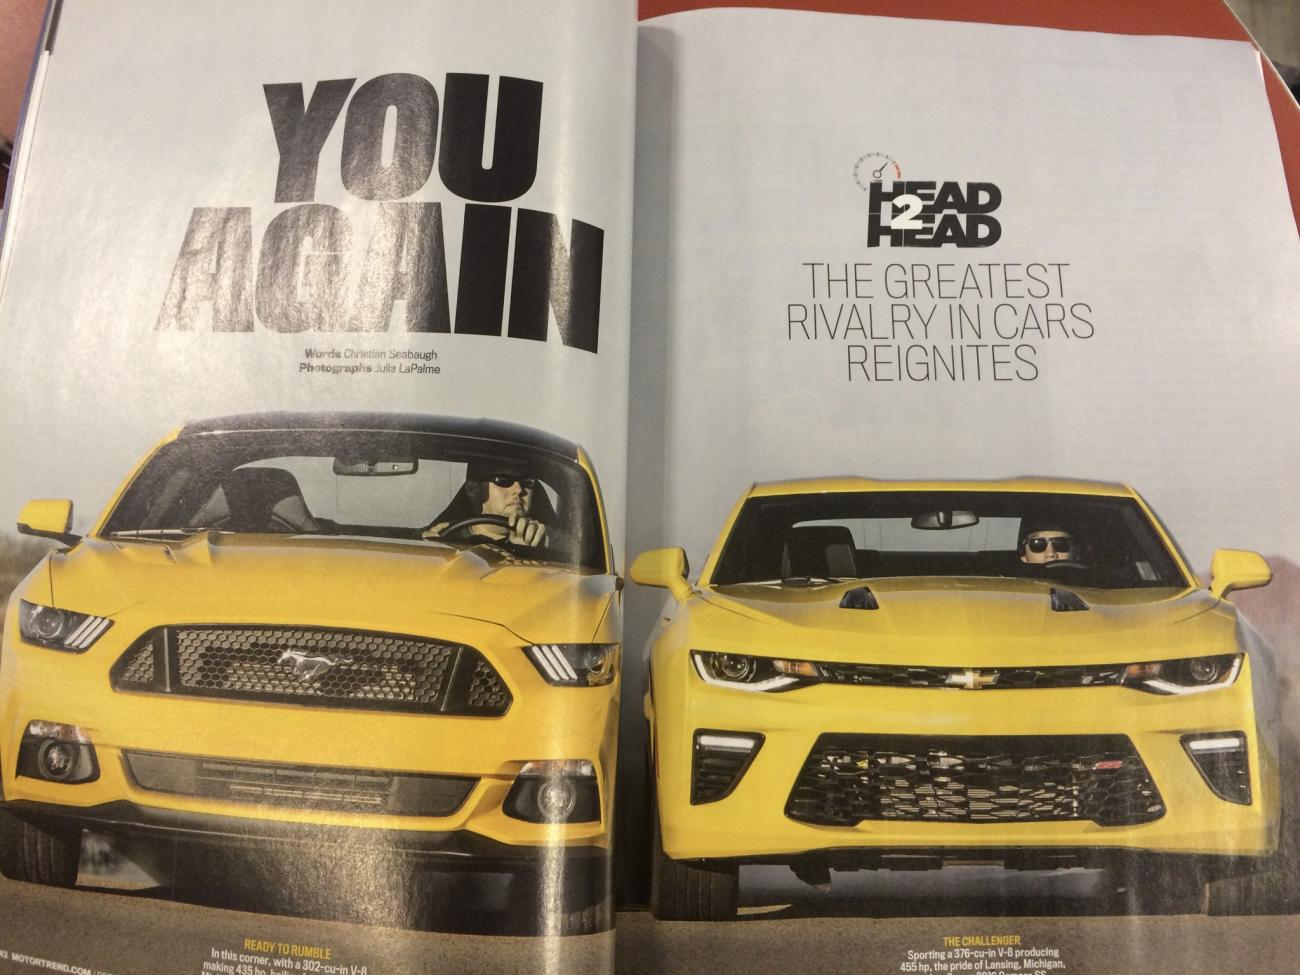 Motor Trend Head To Head 2016 Camaro And Mustang: motor trend head 2 head